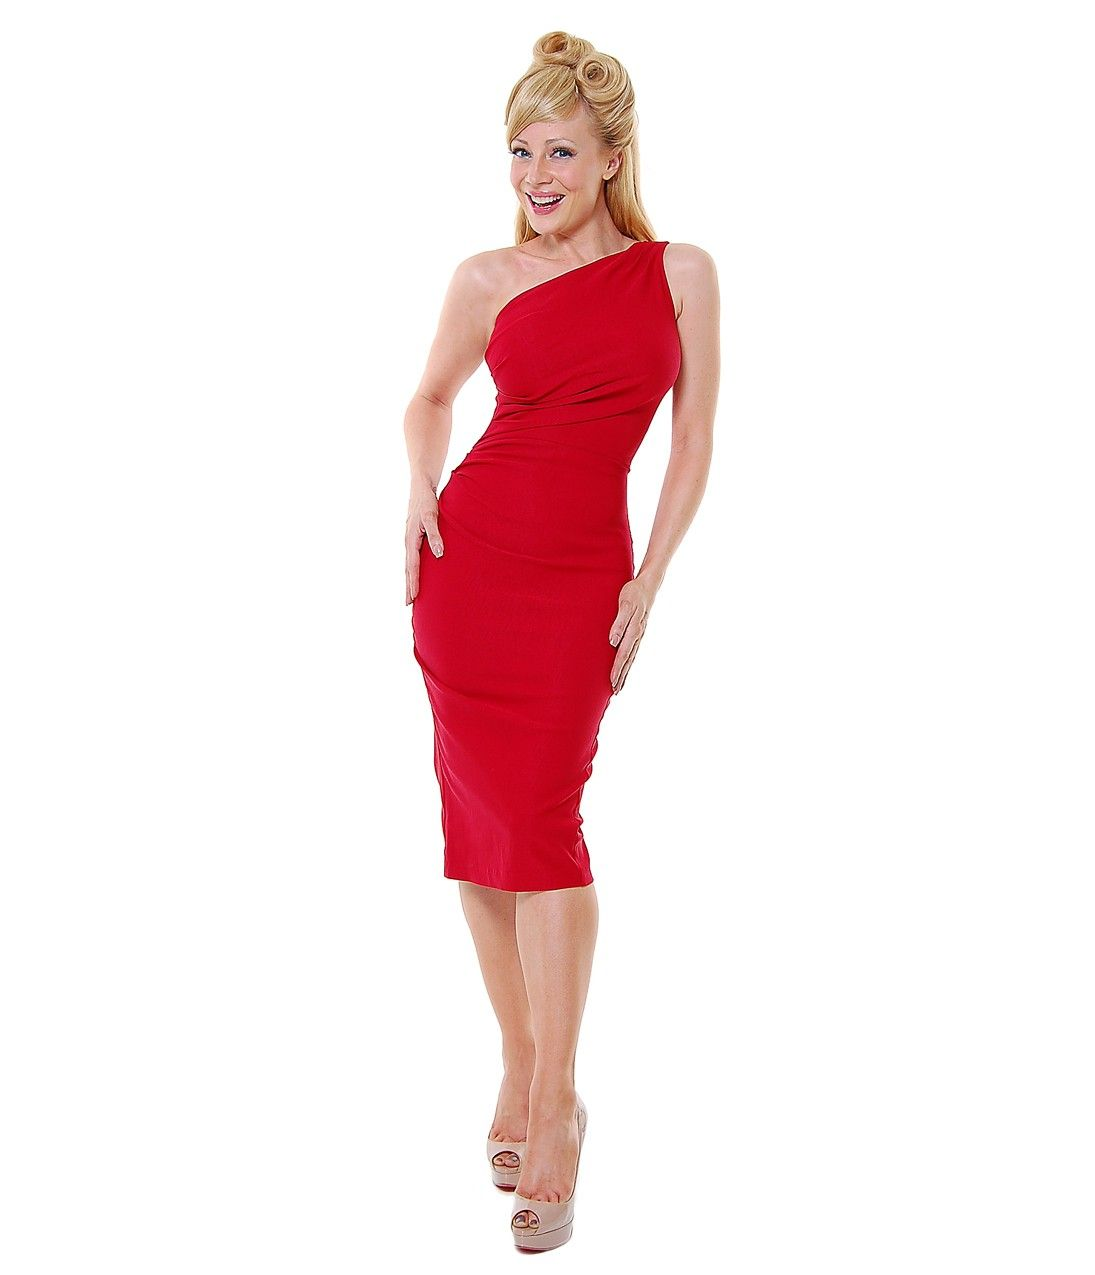 Stop staring gathered ava red single shoulder s style dress